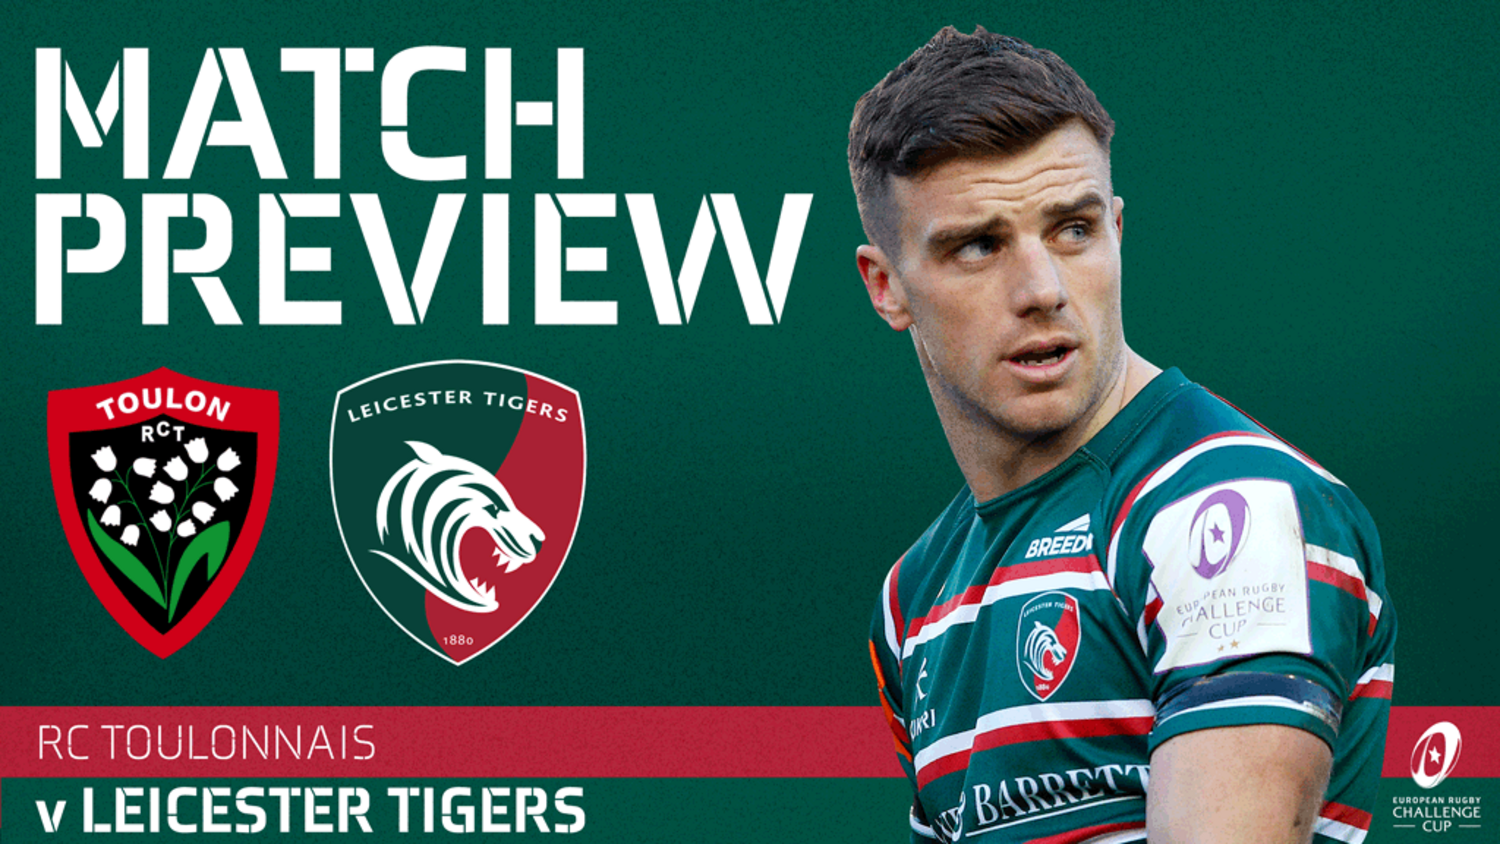 matchday live toulon v tigers 260920 match preview.png